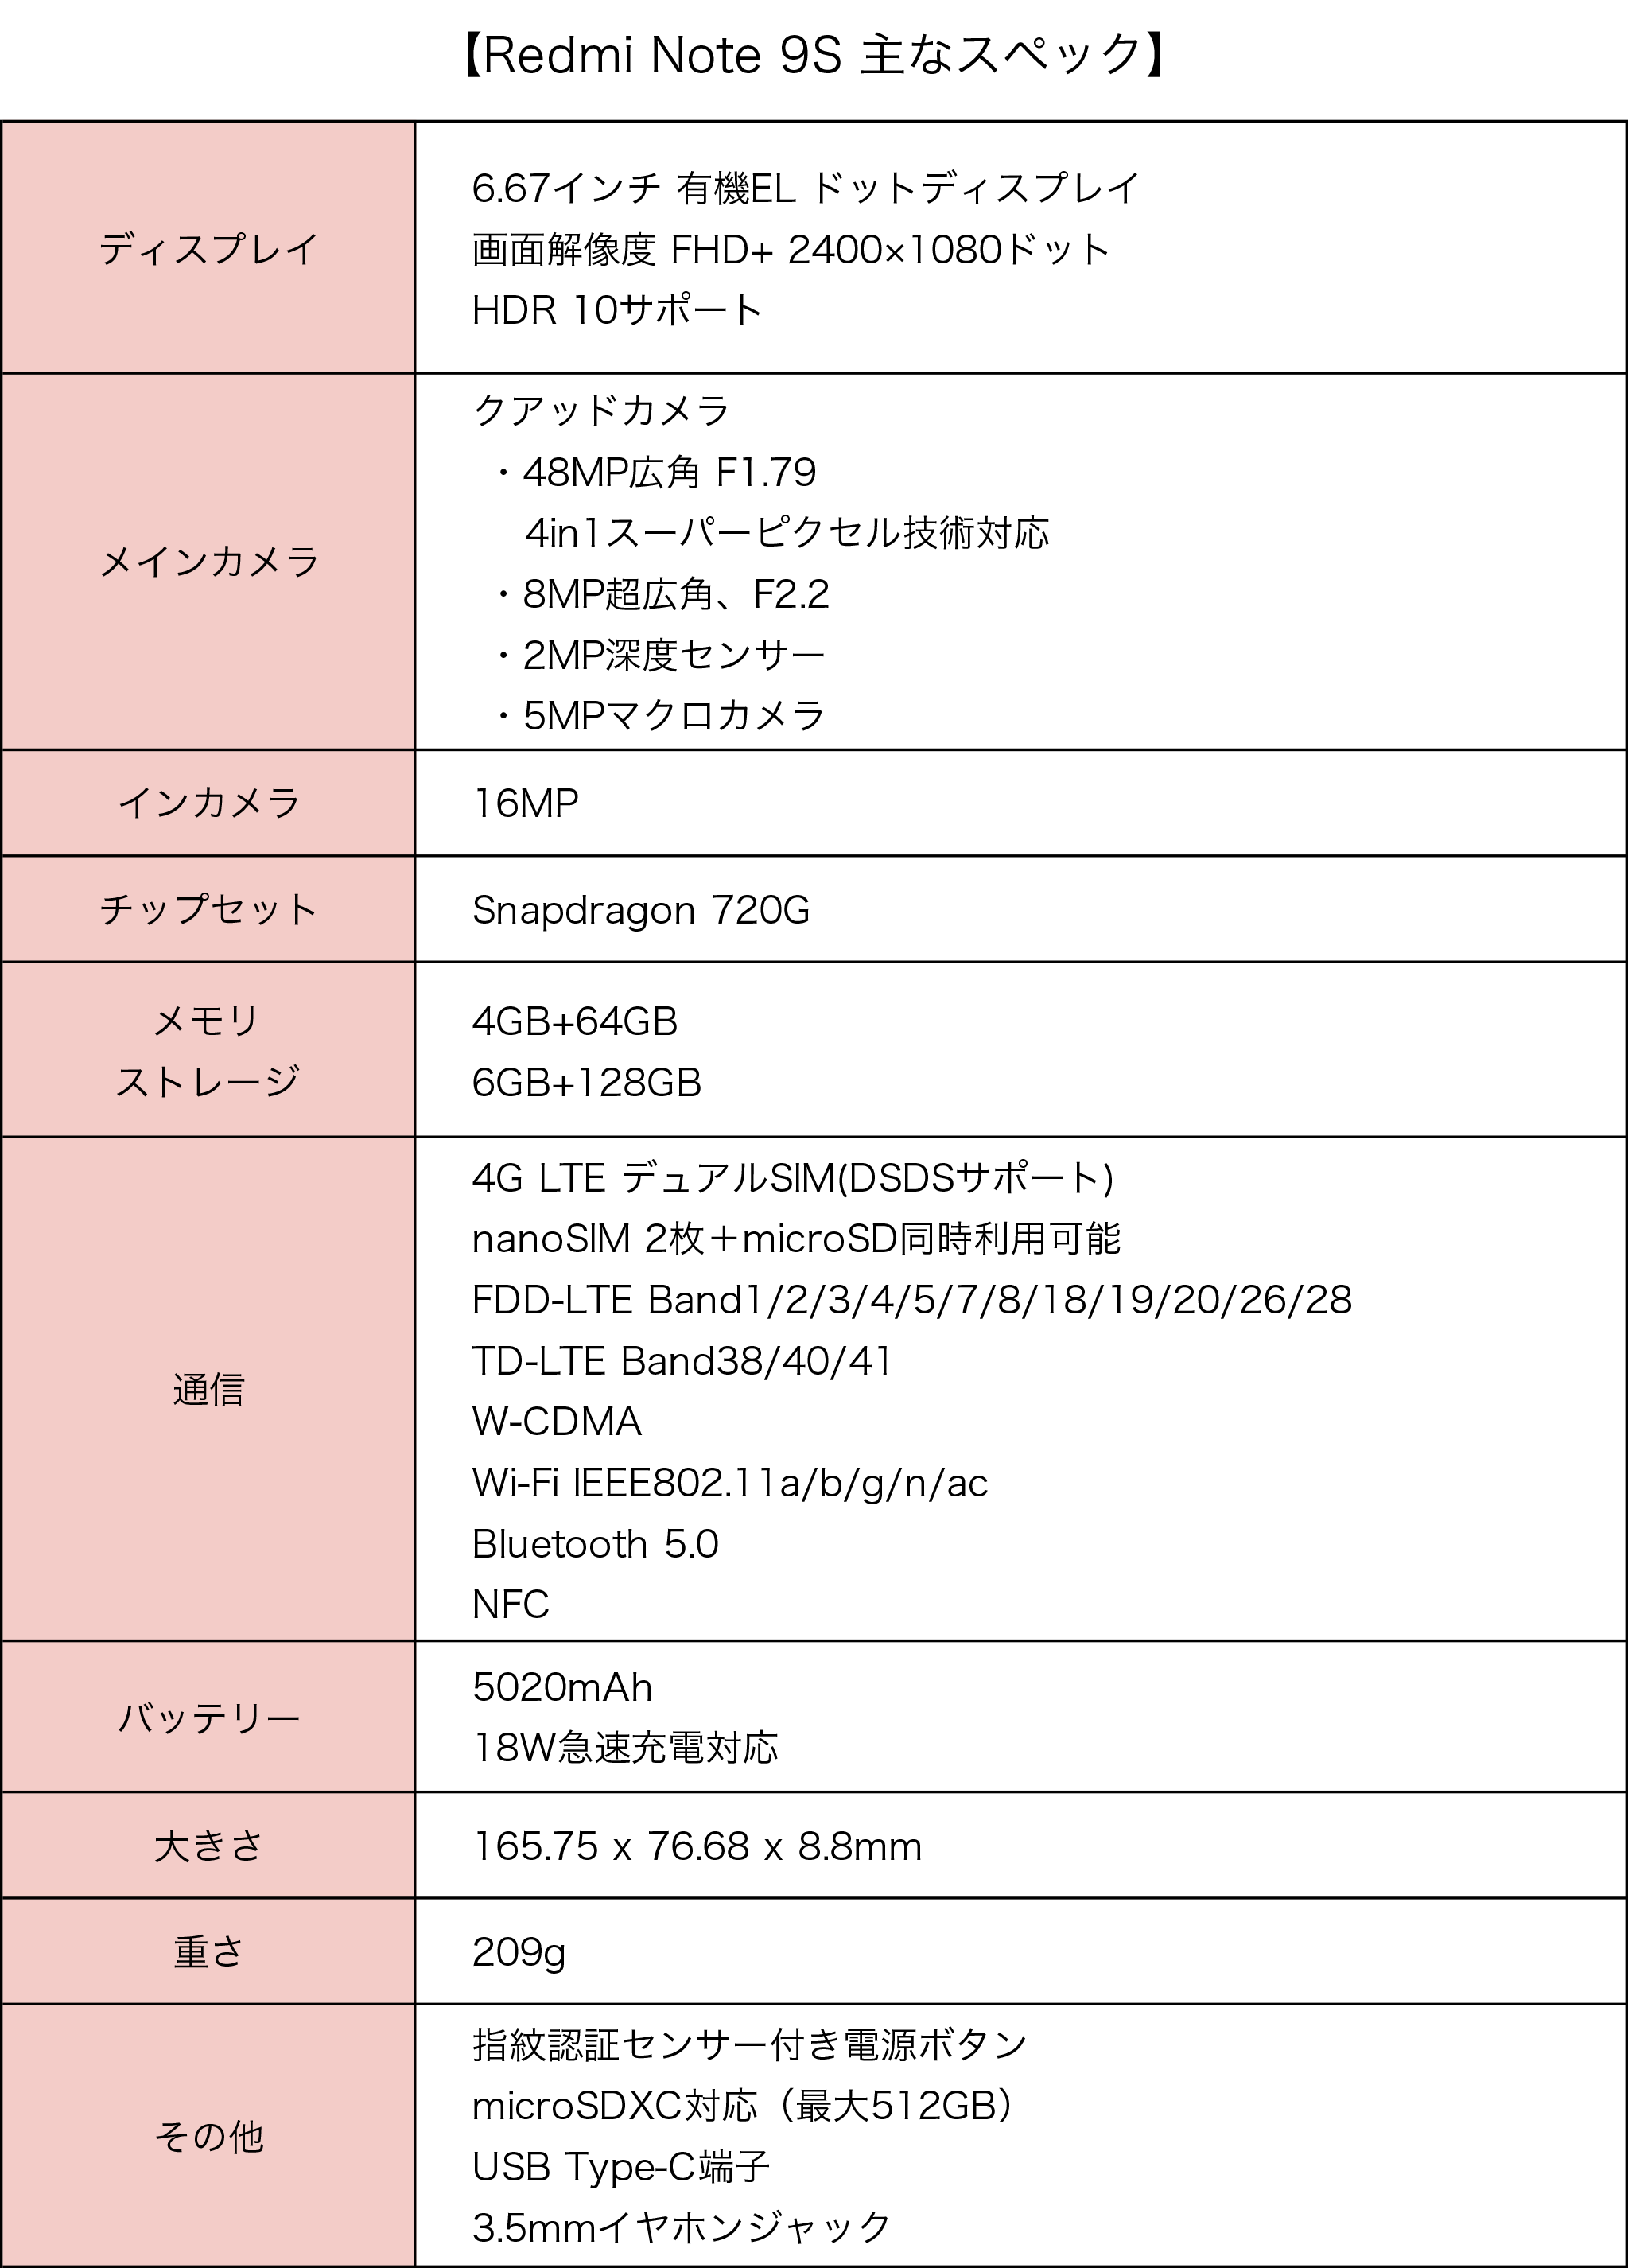 Redmi Note 9S specifications table